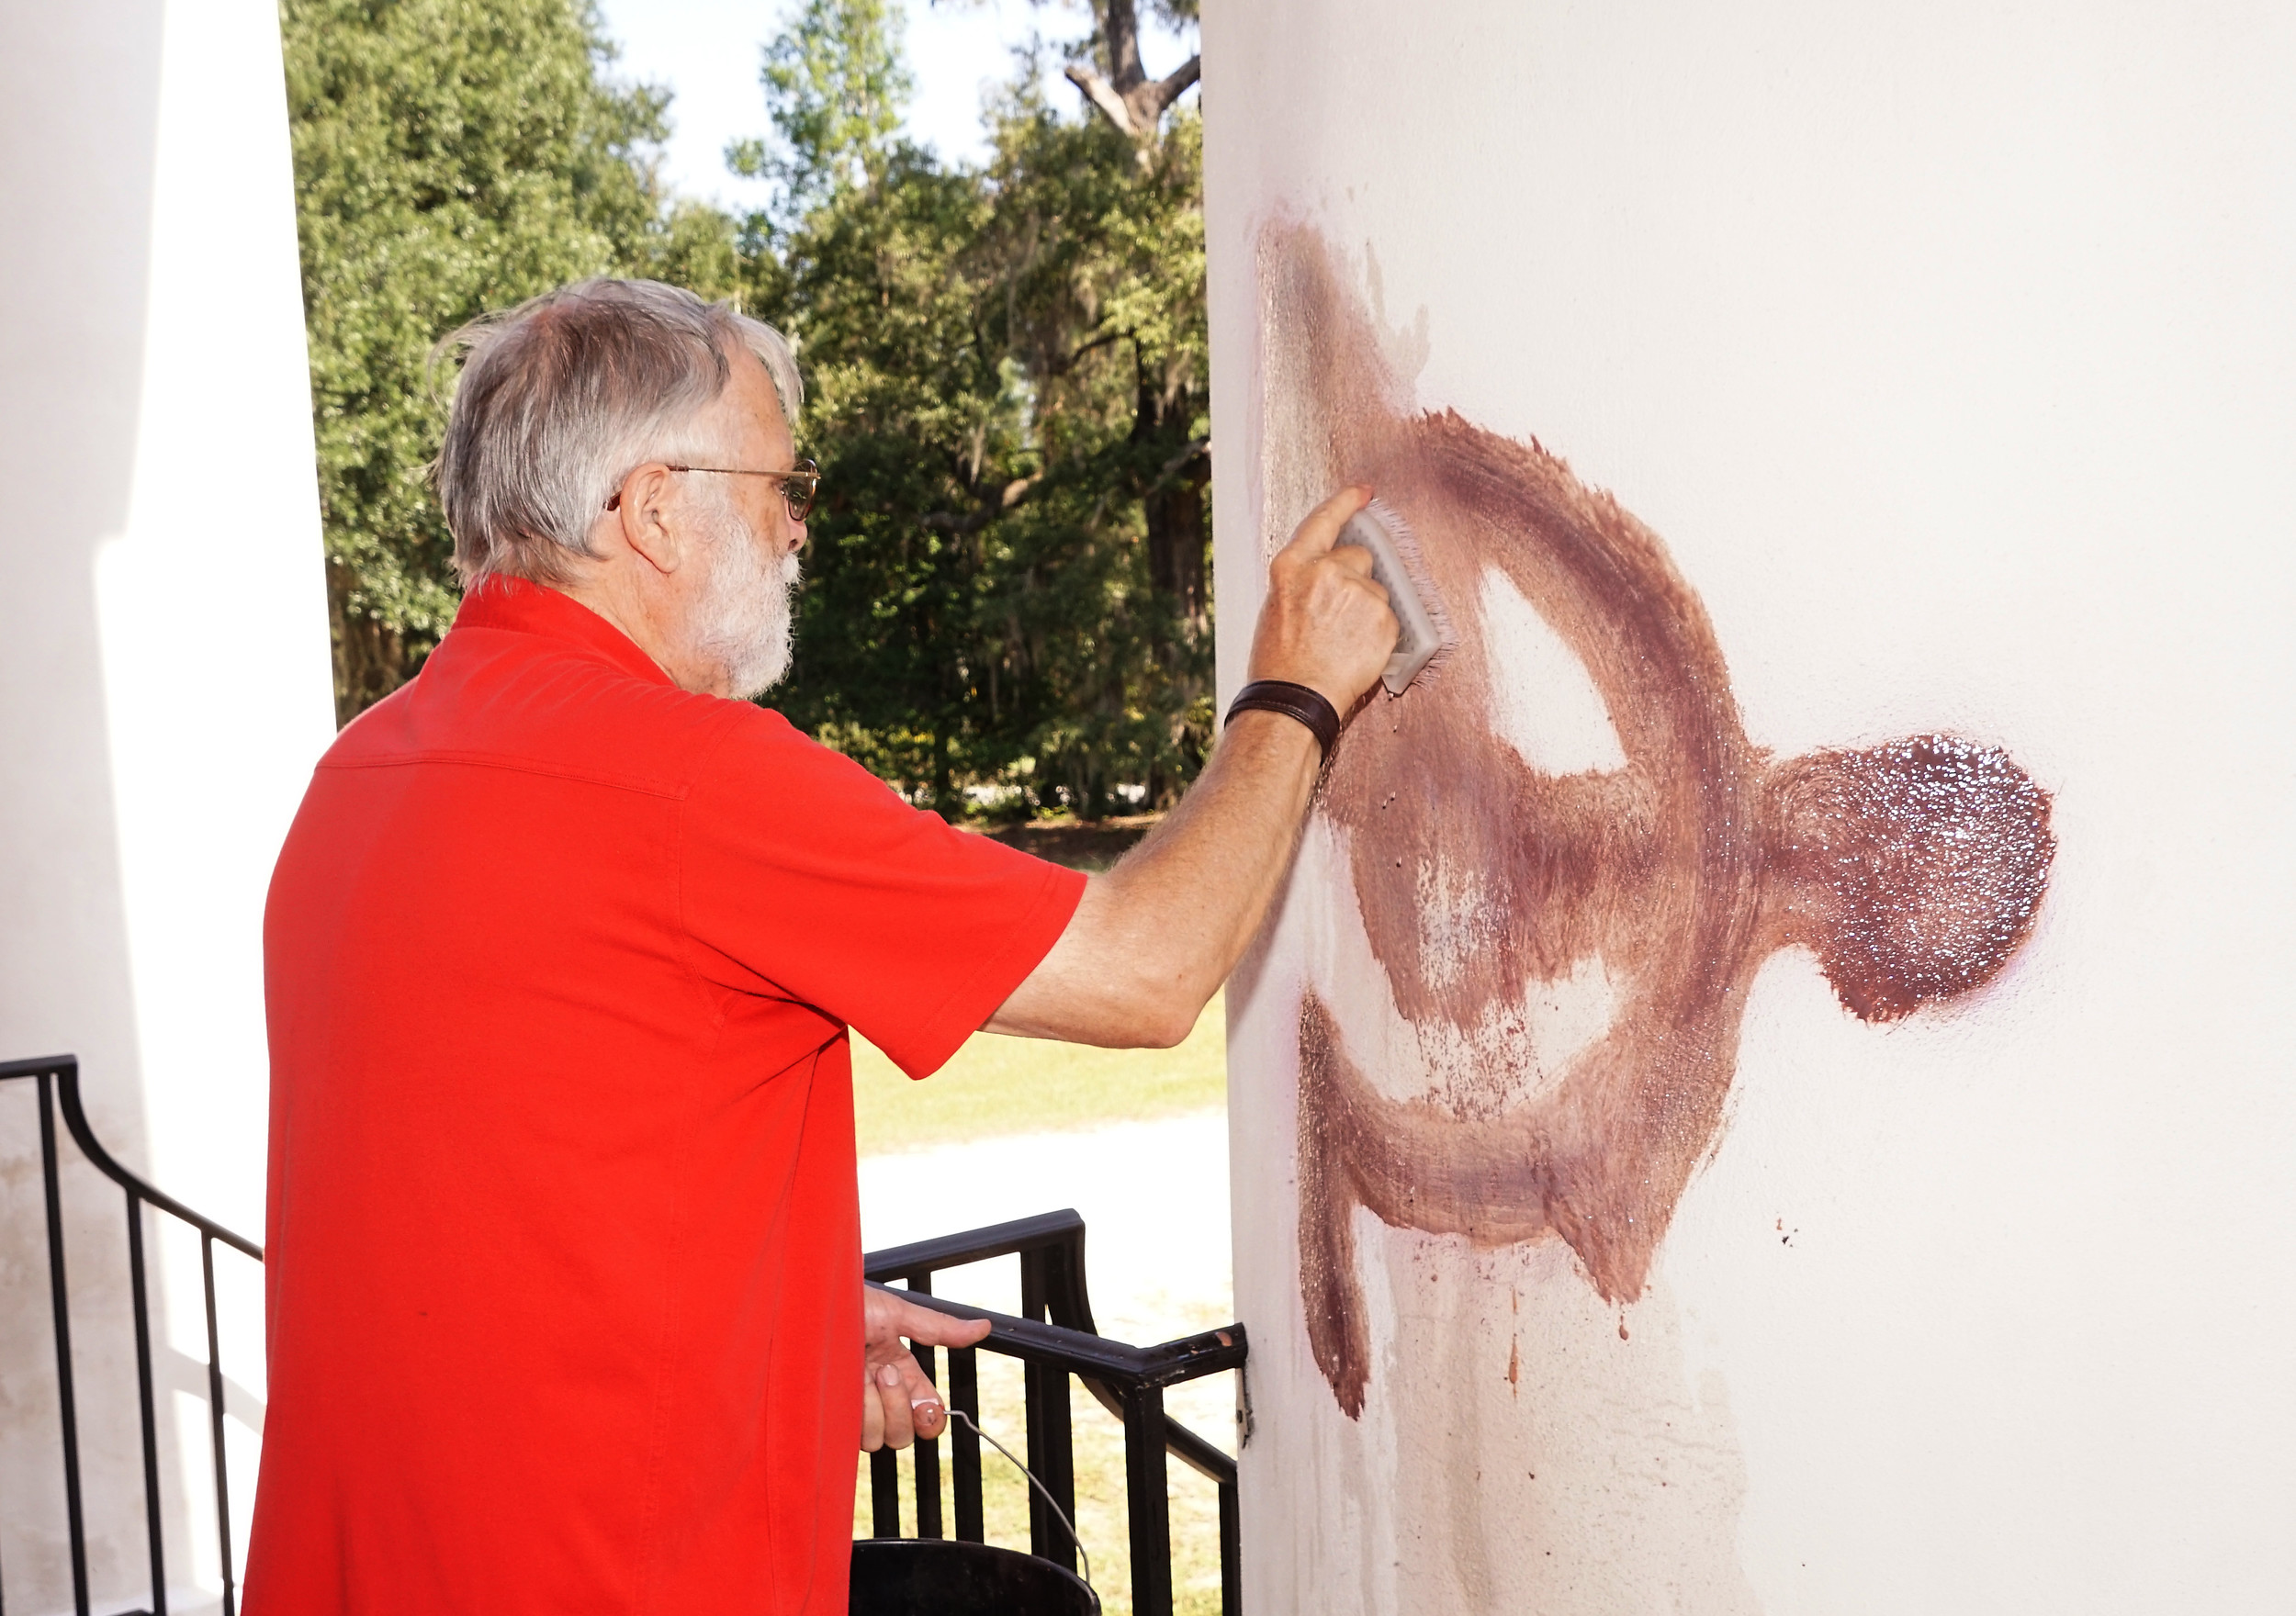 Salem Black River Presbyterian Church member Dick Dabbs cleans paint off a column at the church Friday after vandals painted satanic and other symbols on the church some time the previous night.